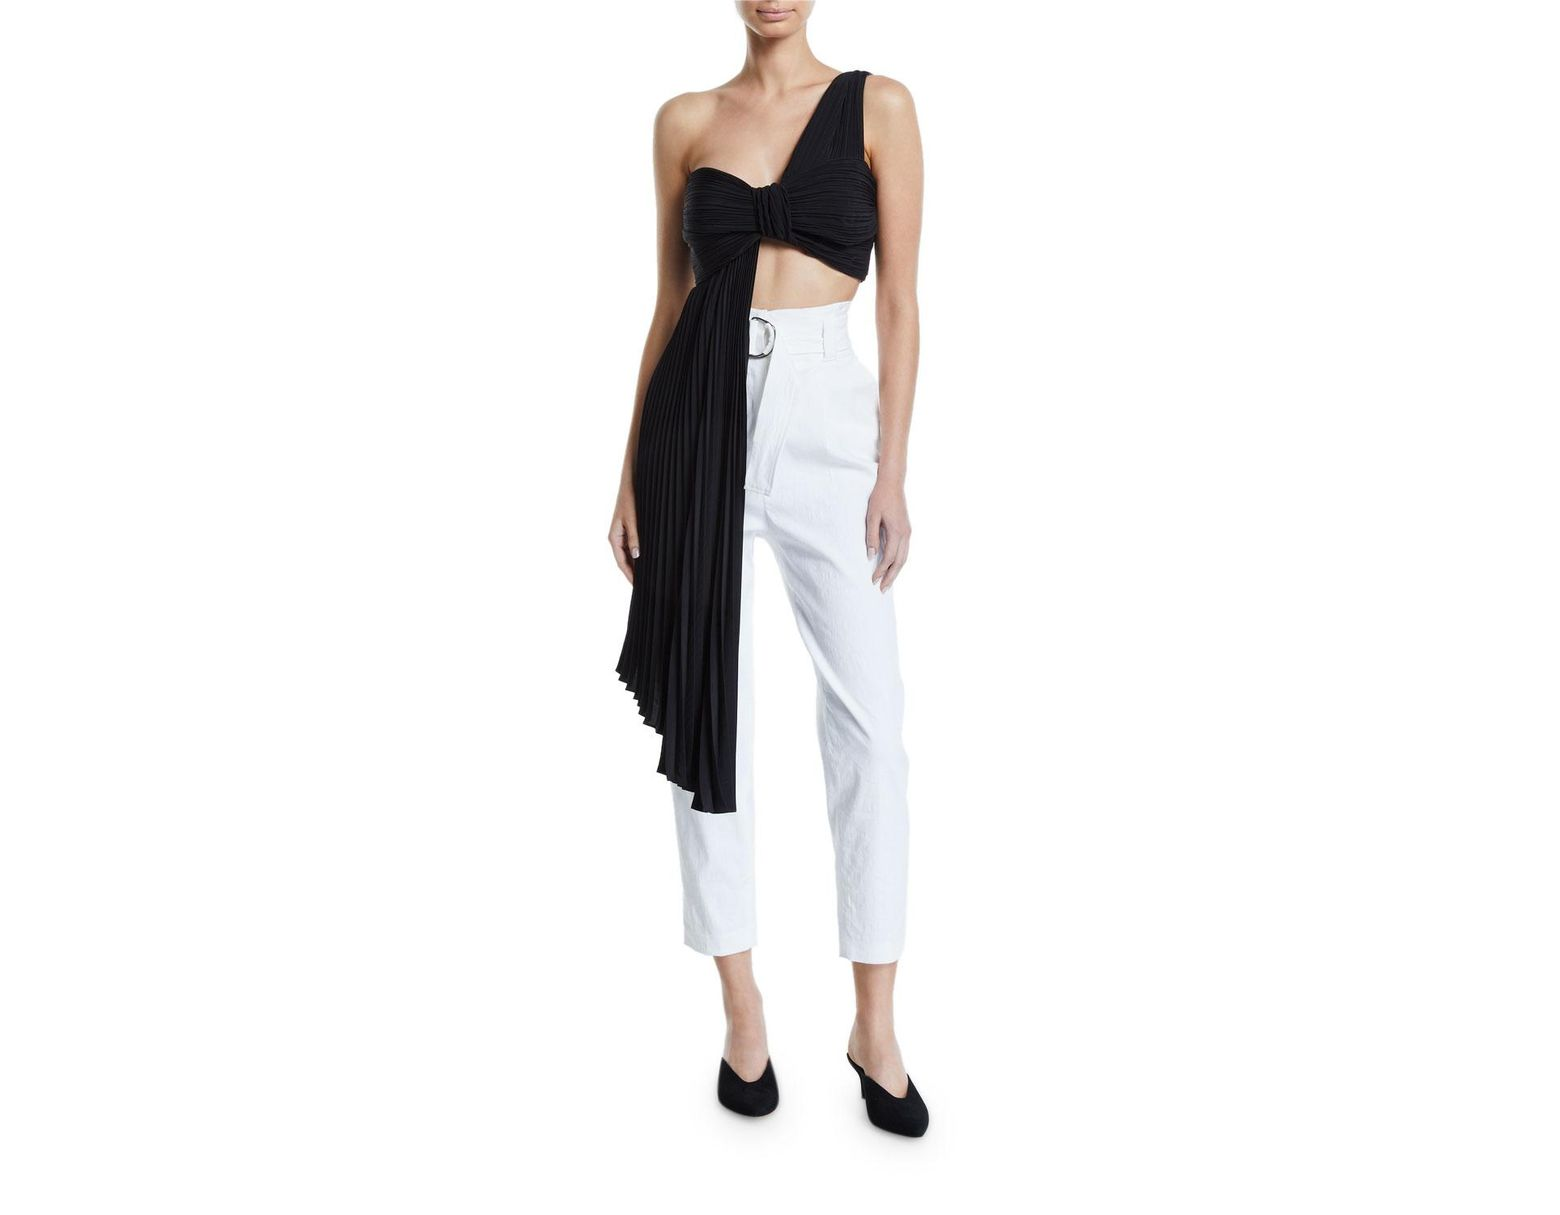 023c9aa7b91a A.L.C. Liv Draped One-shoulder Plisse Crop Top in Black - Save 25% - Lyst